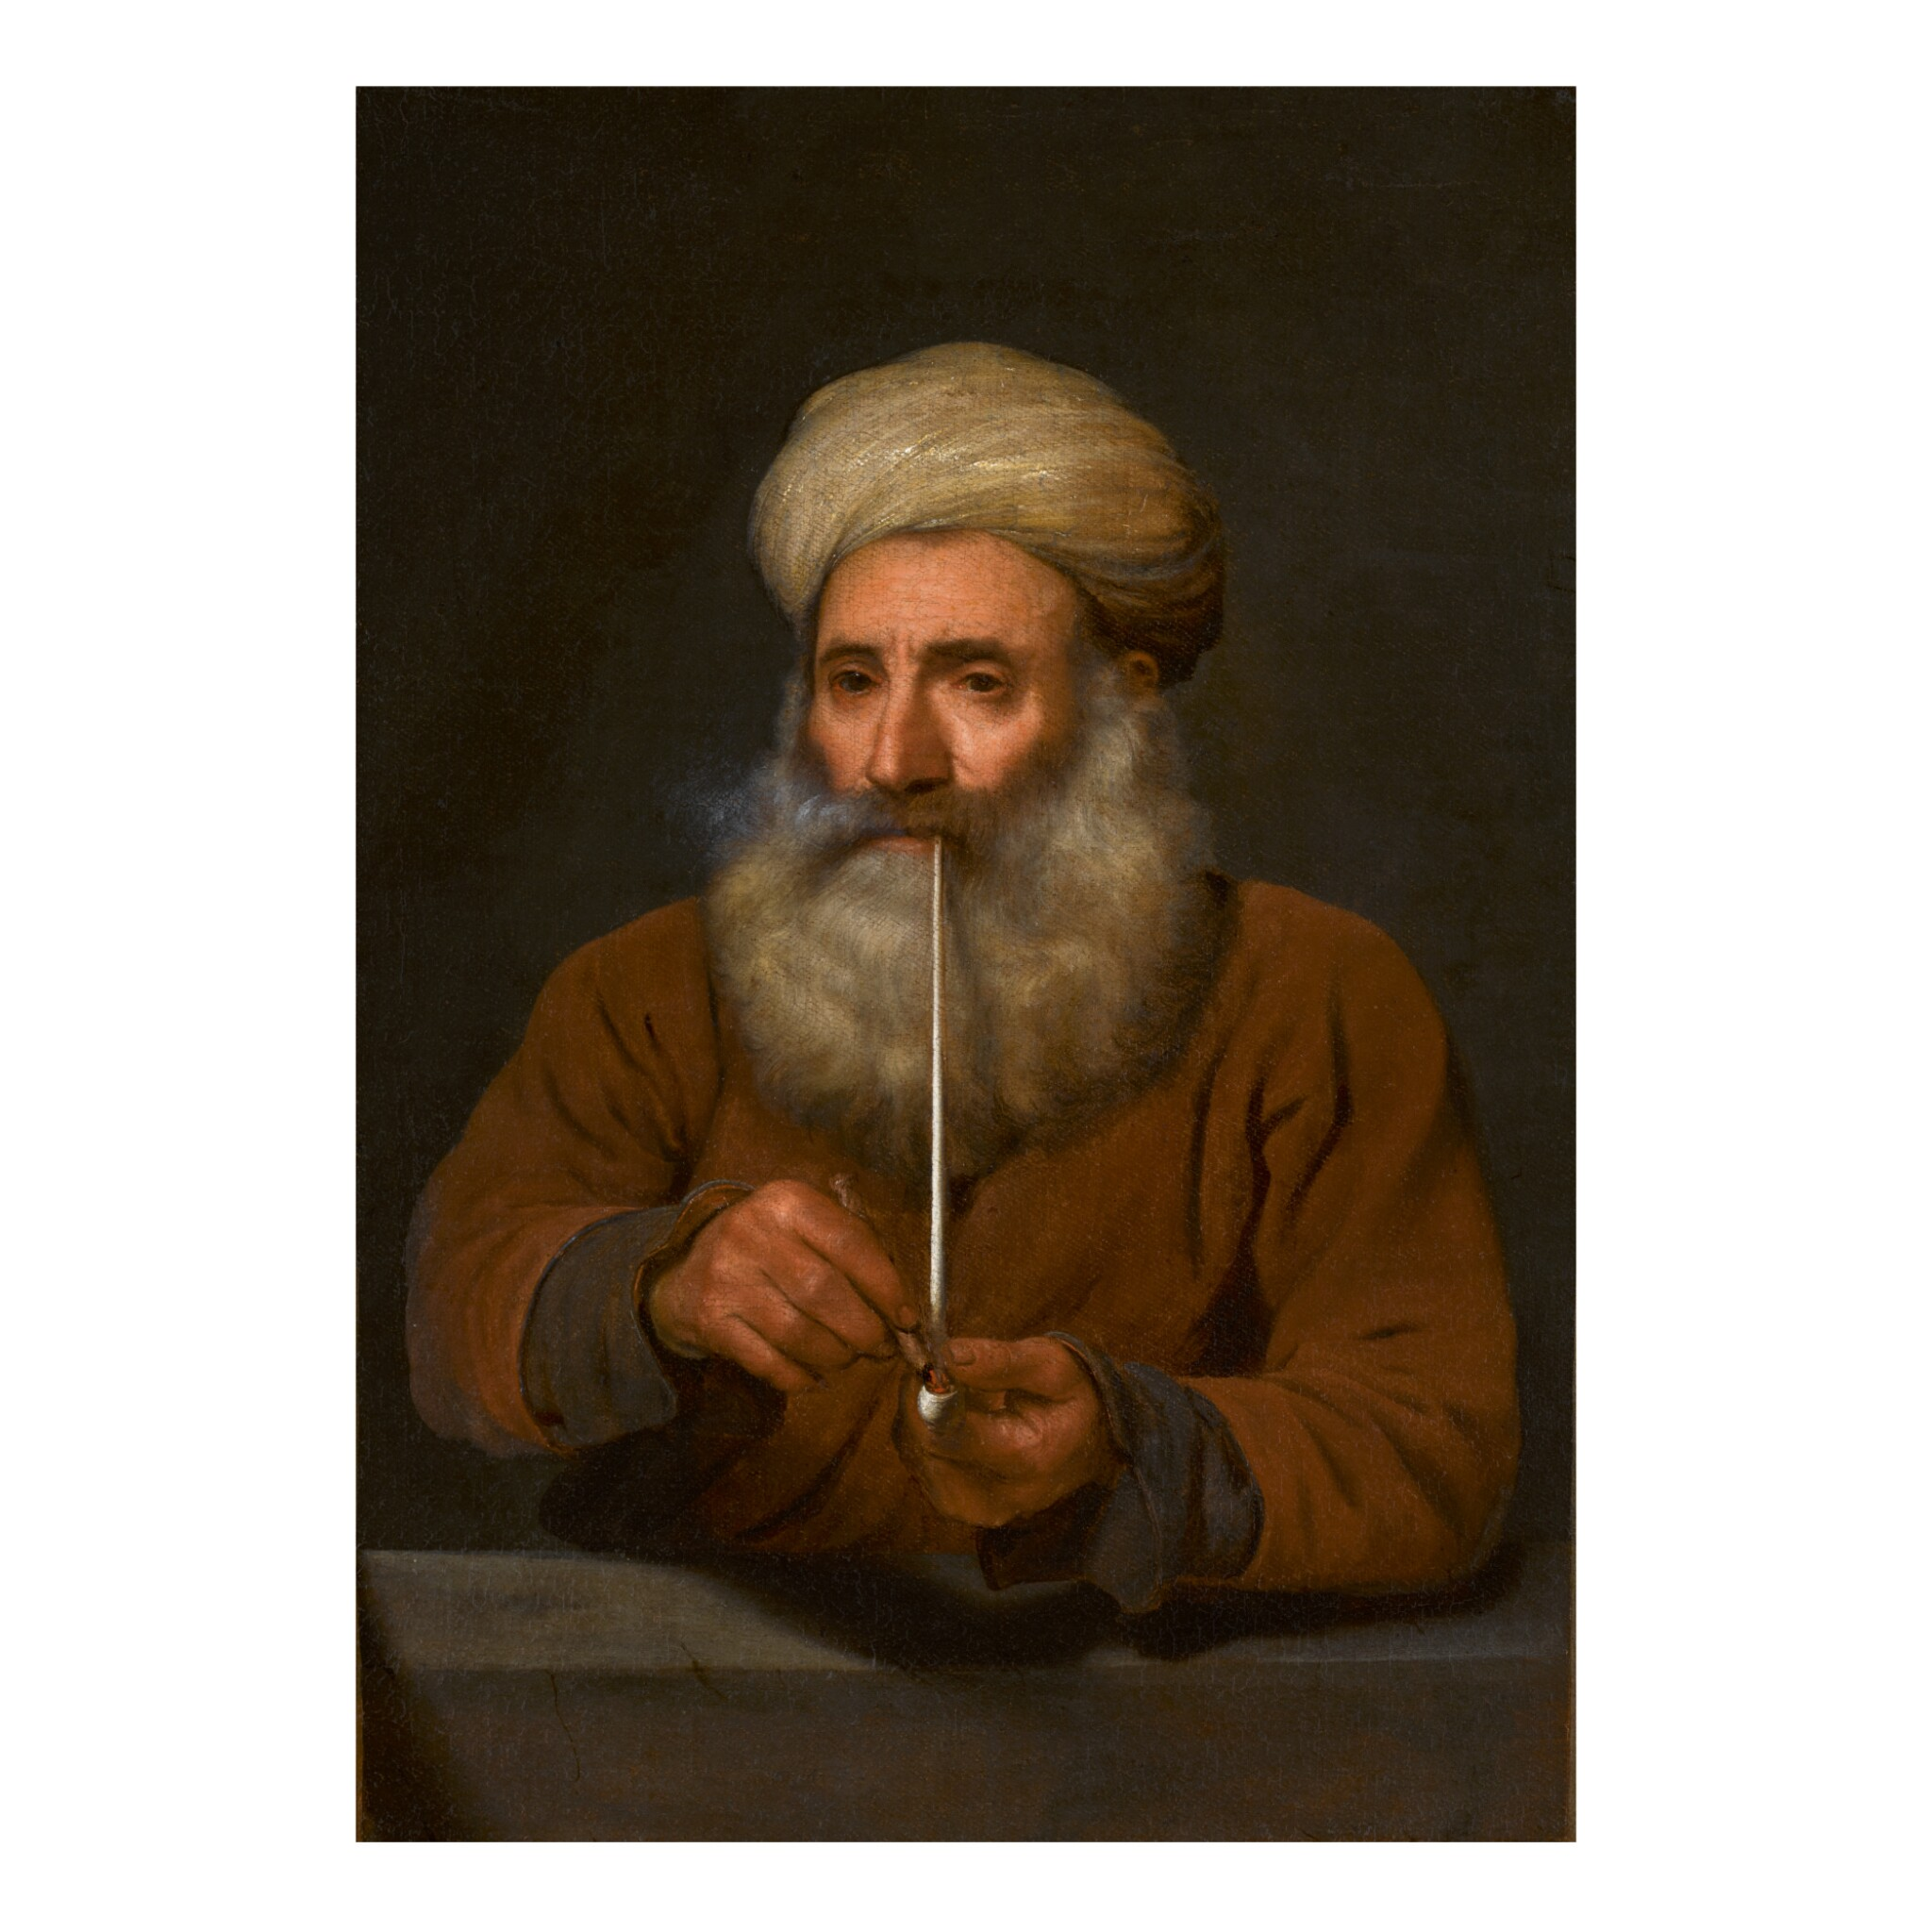 View full screen - View 1 of Lot 24. ATTRIBUTED TO MICHAEL SWEERTS   OLD MAN SMOKING A PIPE, WEARING A TURBAN, HALF-LENGTH.